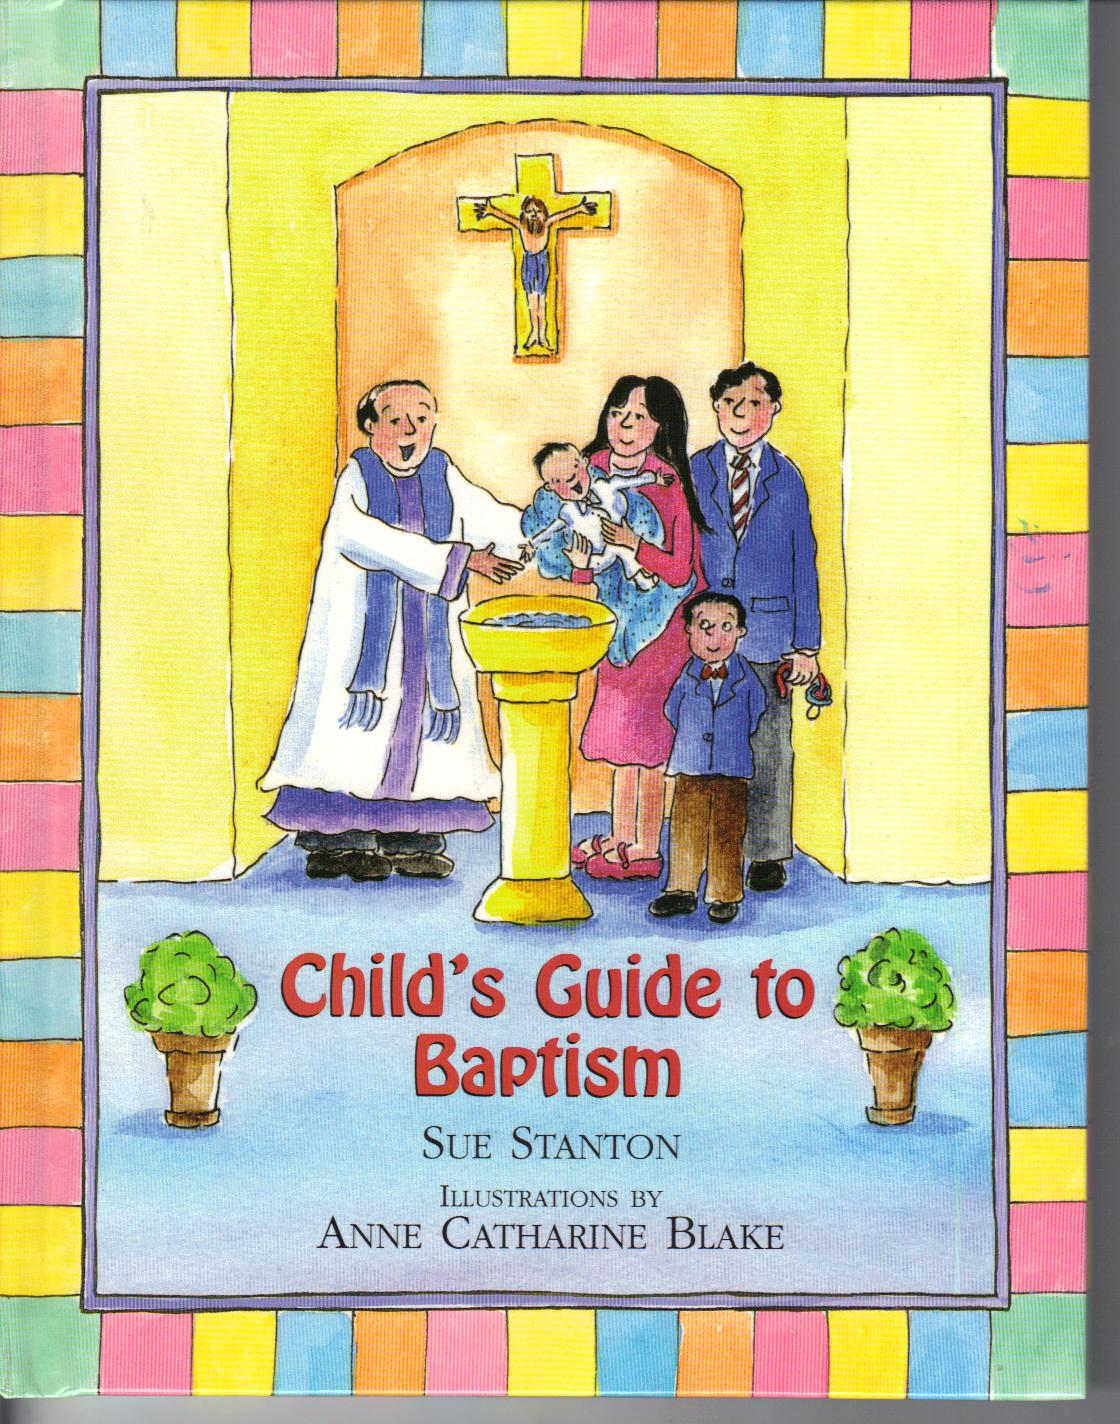 Child's Guide to Baptism by Sue Stanton 108-9780809167289